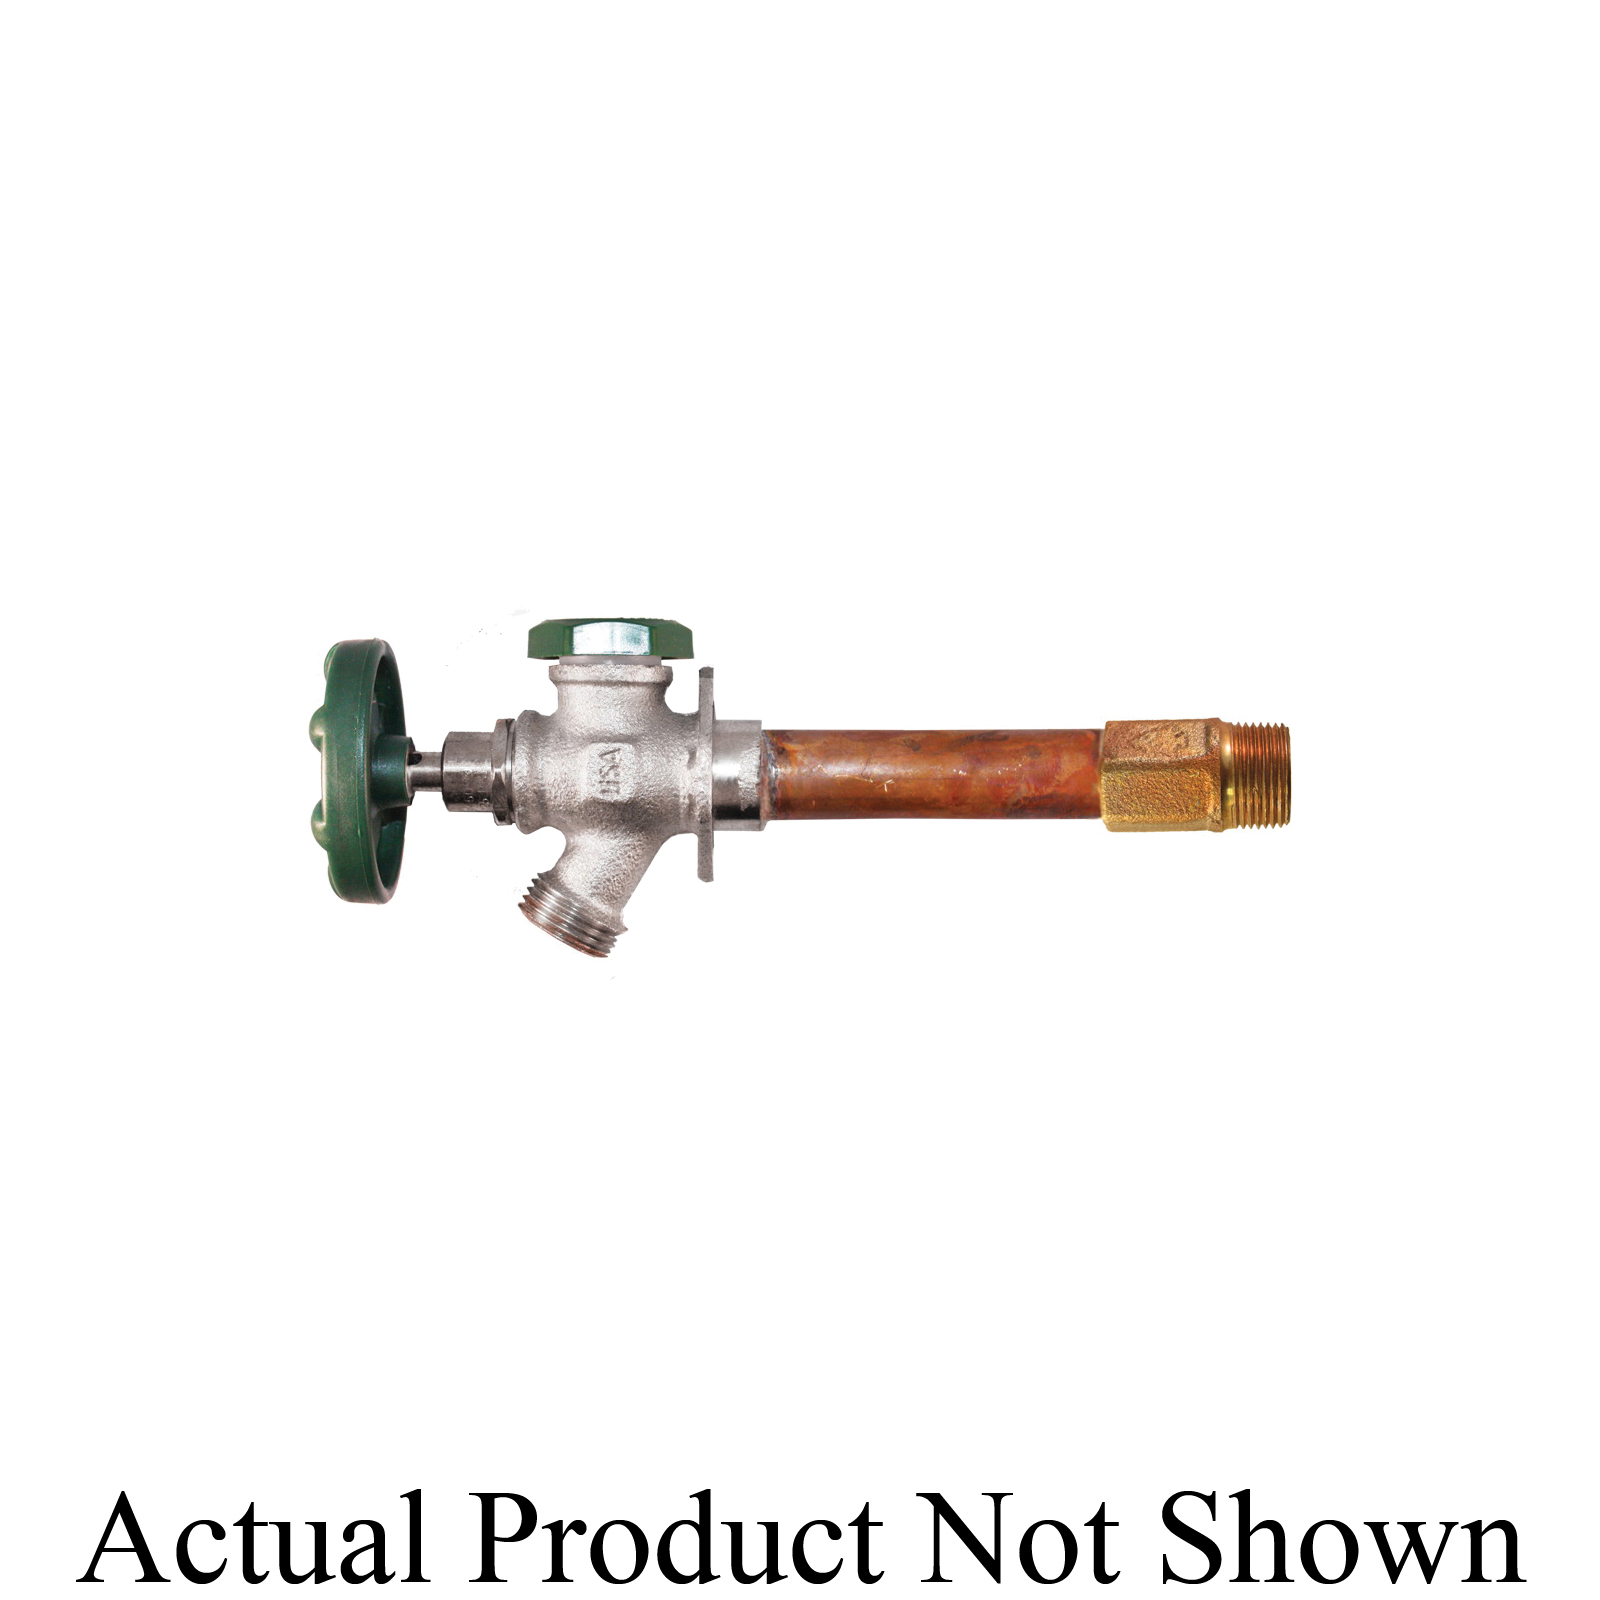 Arrowhead Brass 425-06QTLF Frost-Proof Anti-Siphon Wall Hydrant With Green Cap, 1/2 x 3/4 in Inlet x 3/4 in Outlet, FNPT x MNPT Inlet x Hose Threaded Outlet, 125 psi